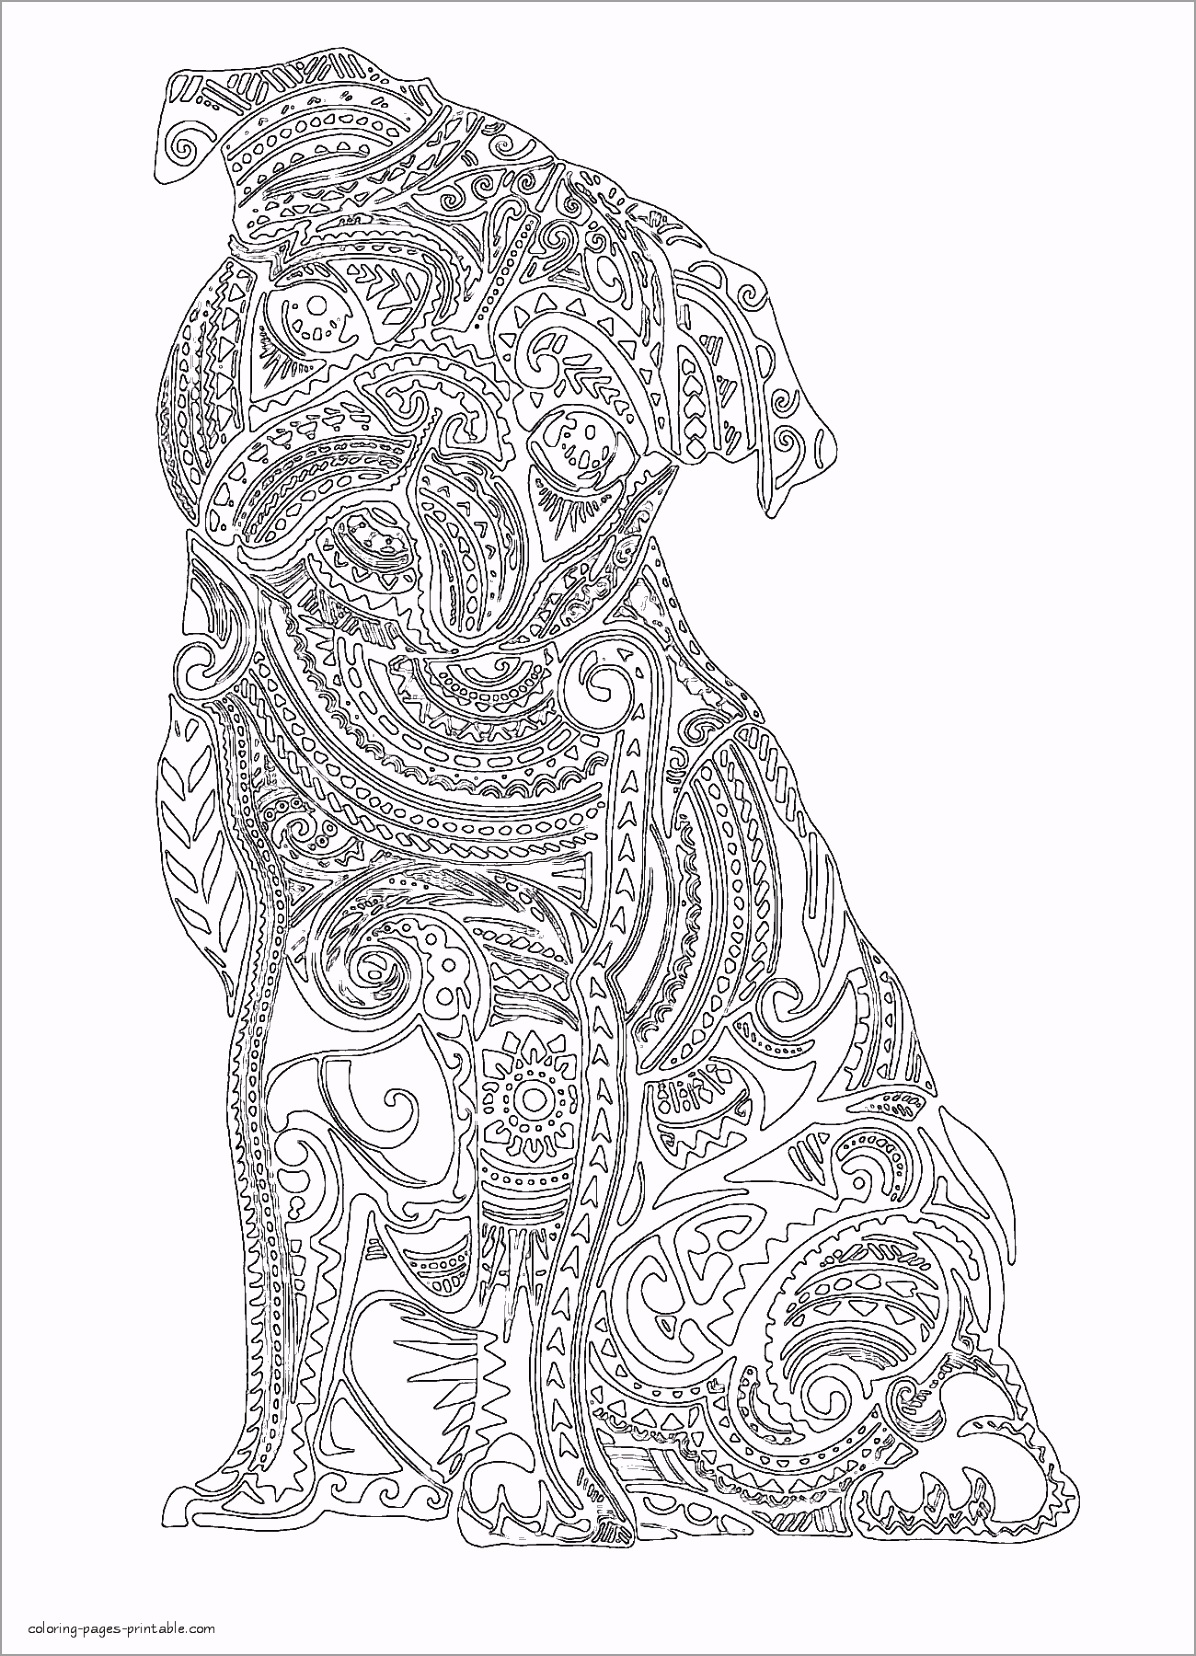 free coloring pages for adults printable hard to color colouring beautiful book fabulous animals cute of turuy